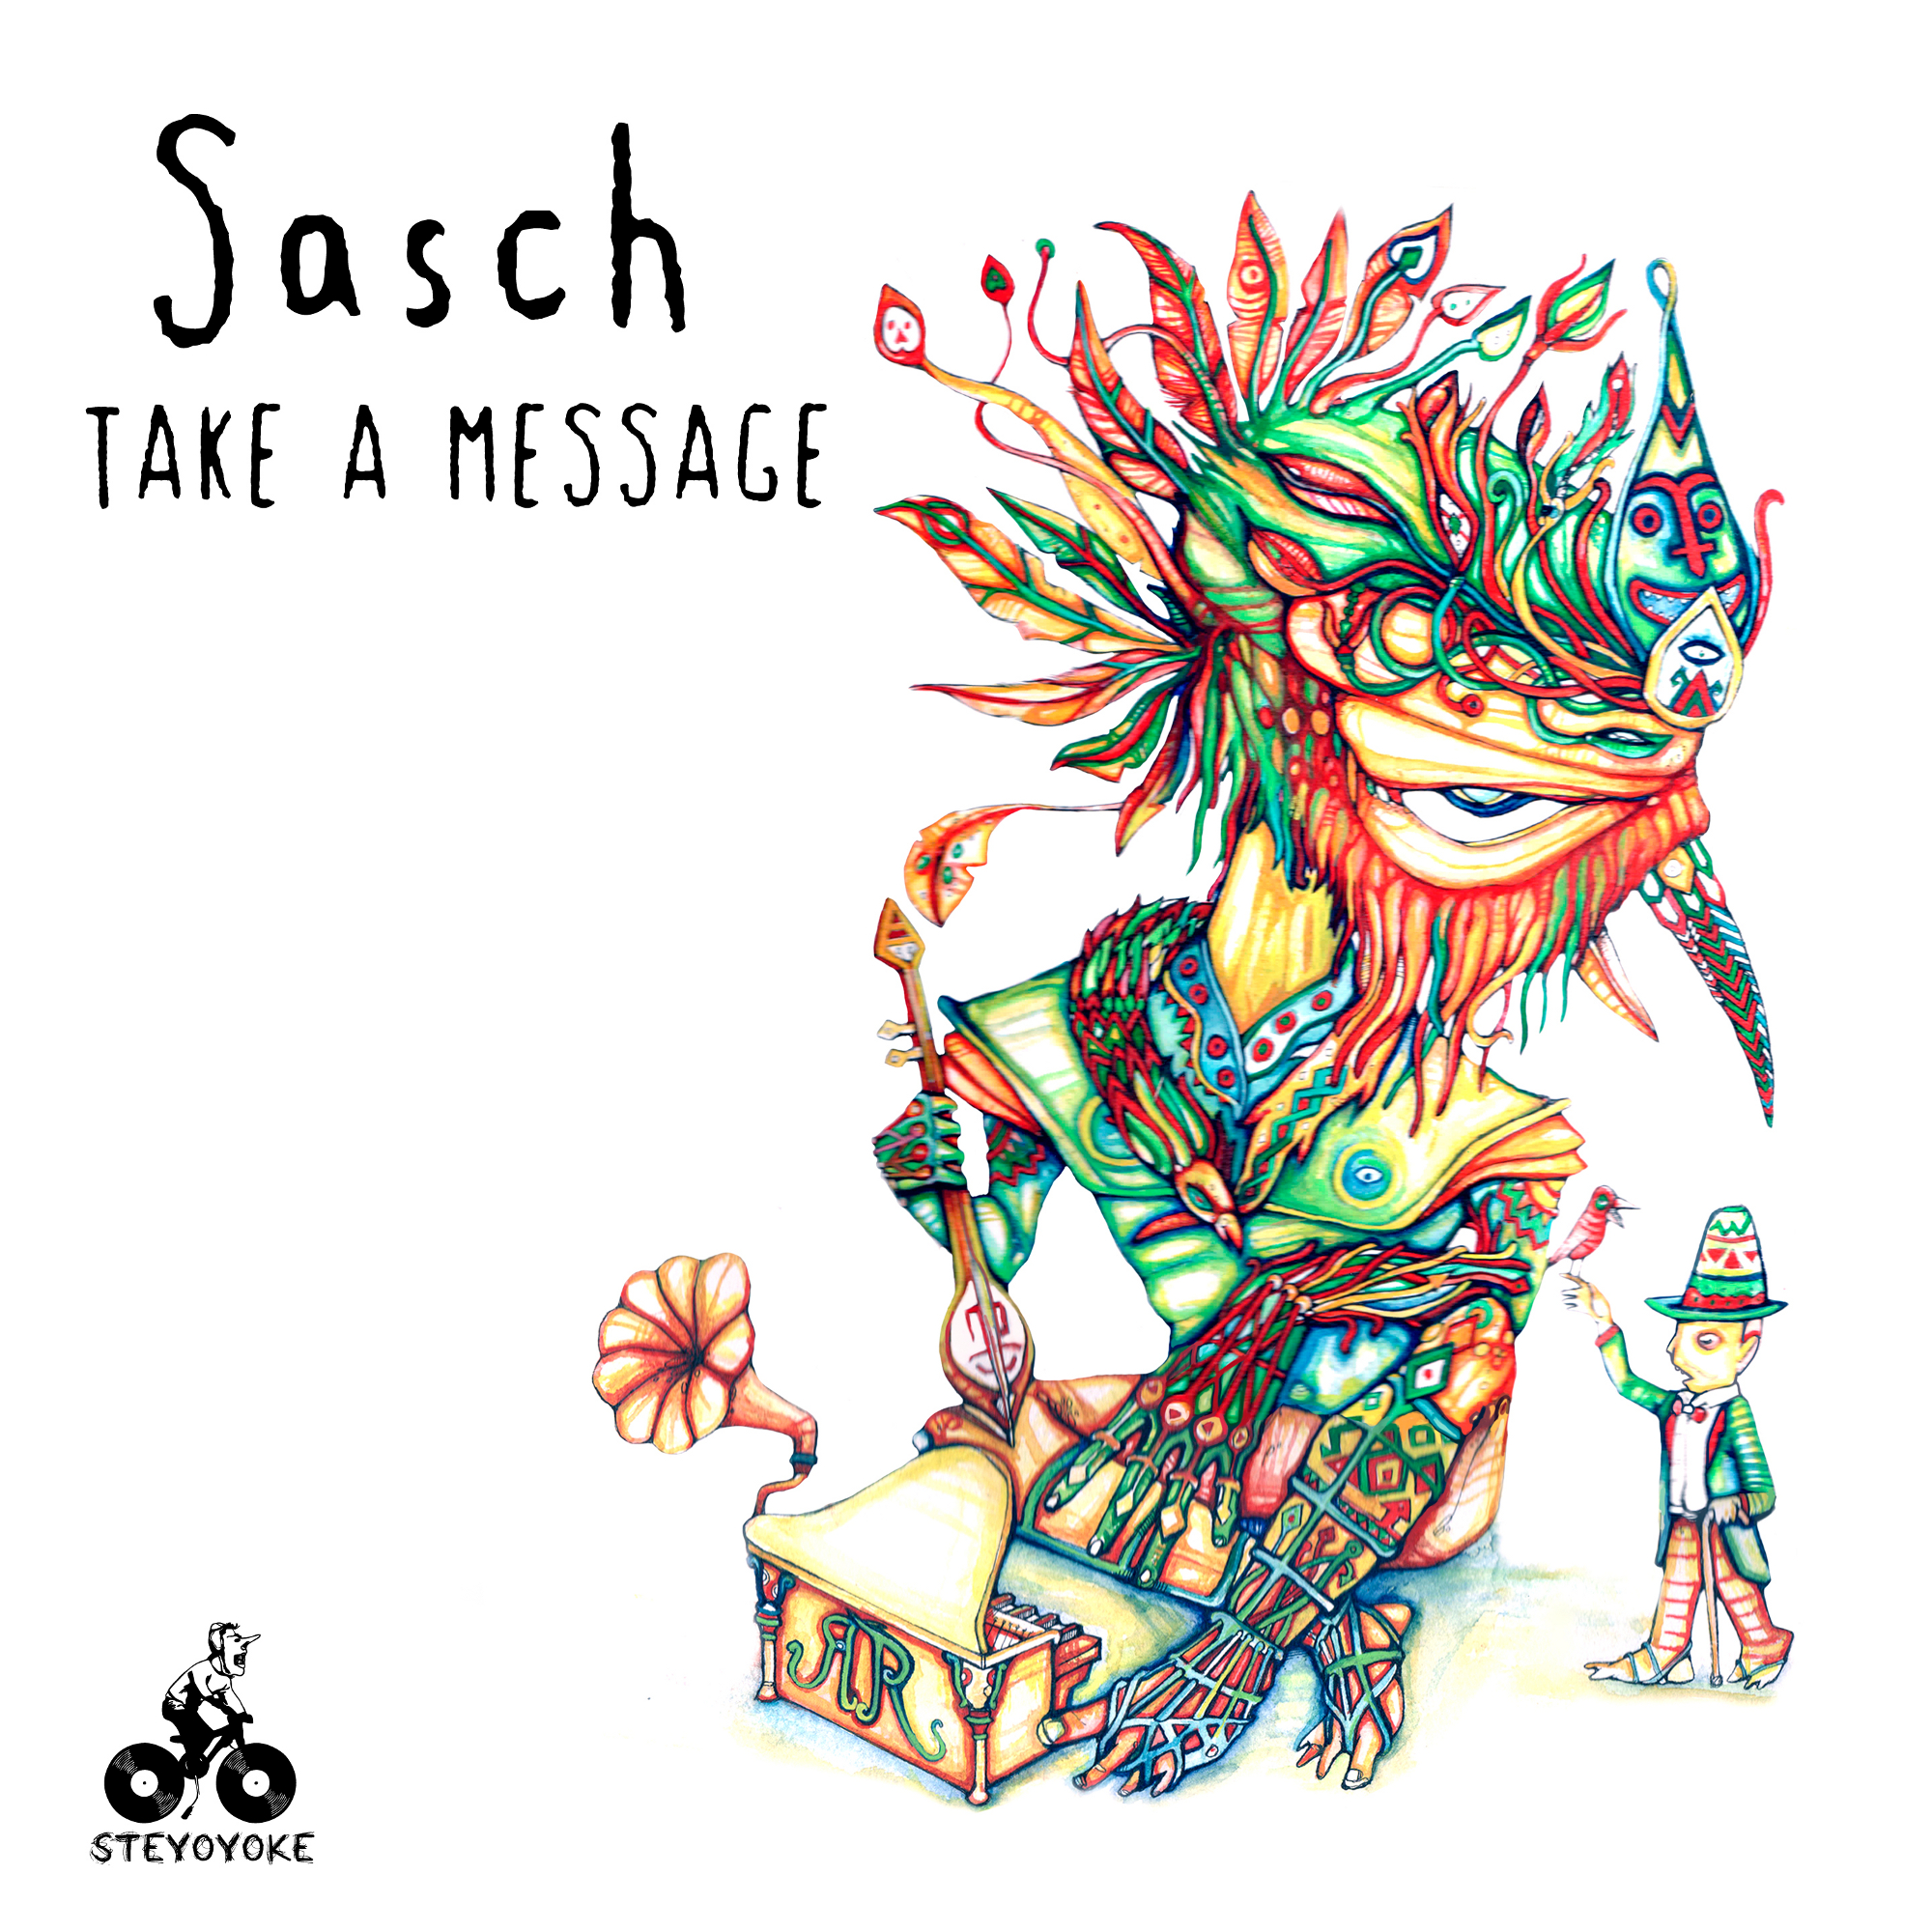 Sasch - Take a Message EP